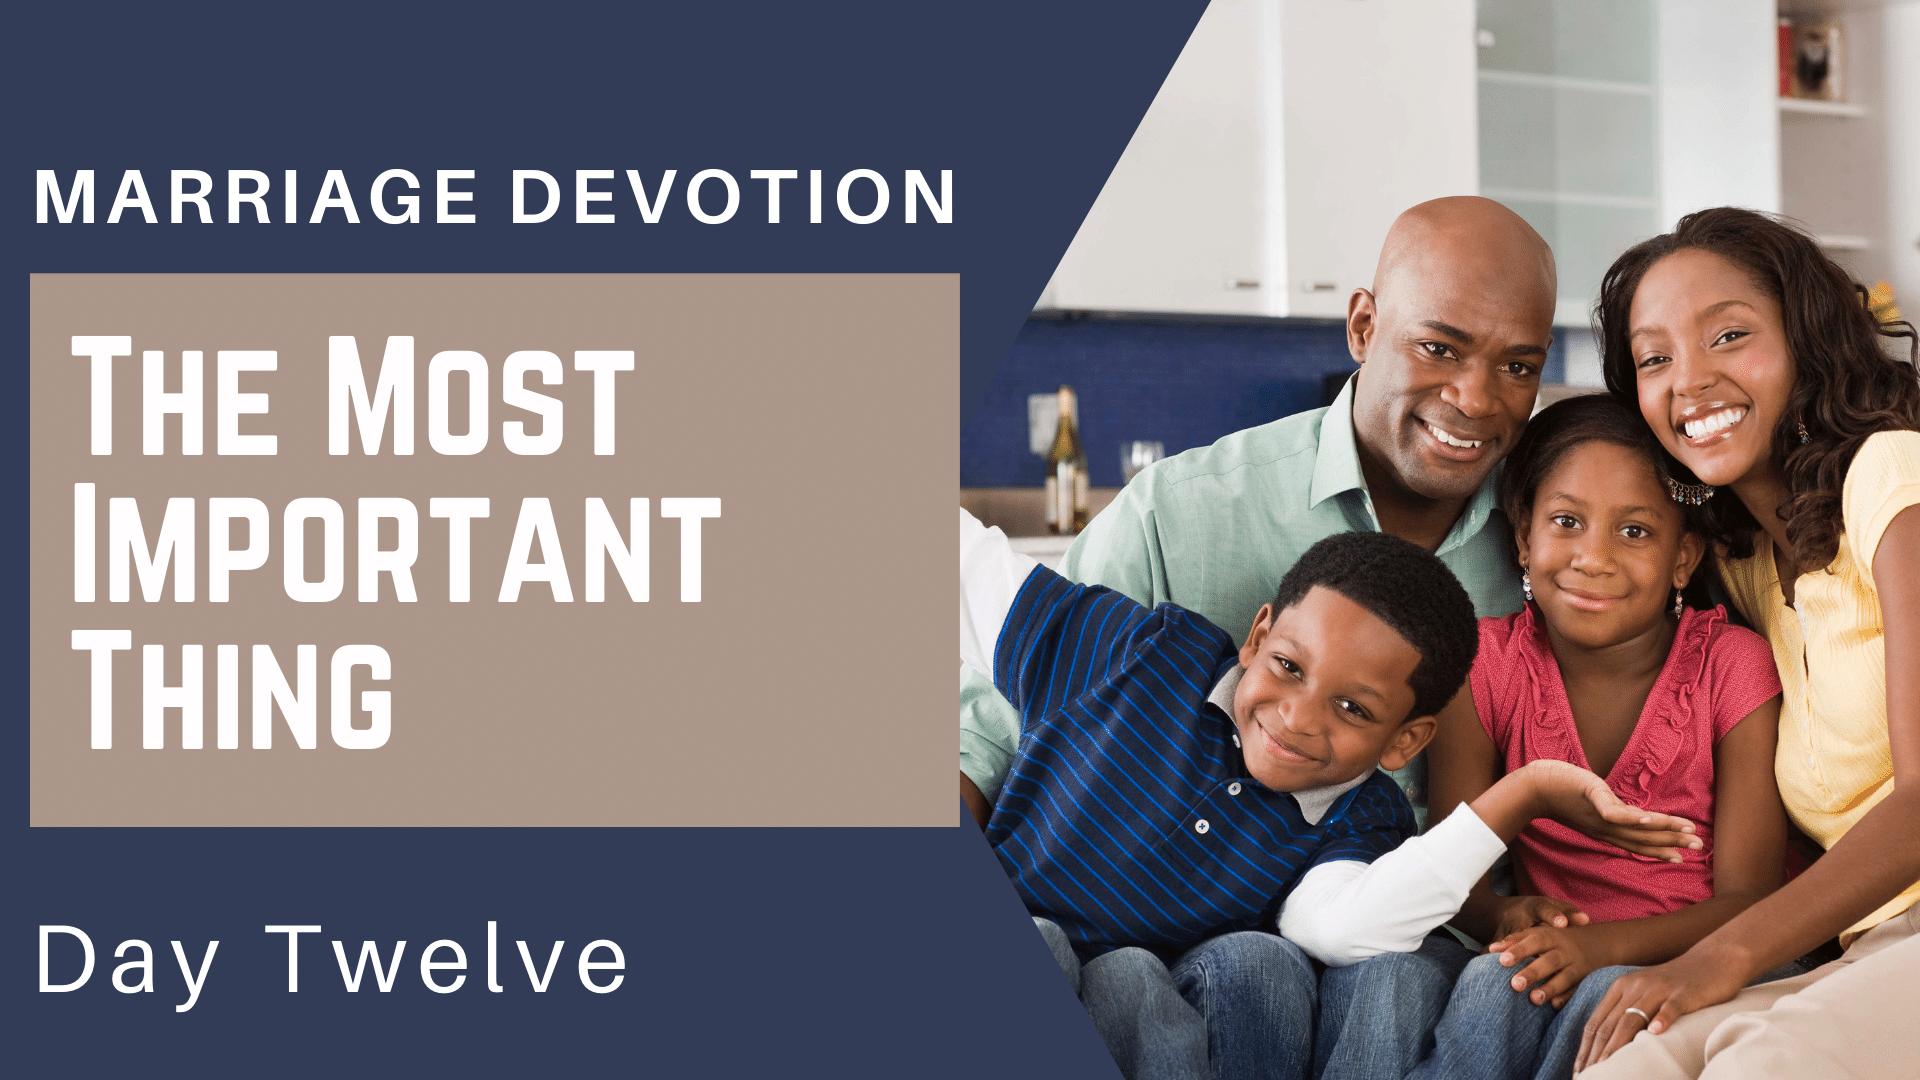 Marriage Devotion Day 12 – The Most Important Thing